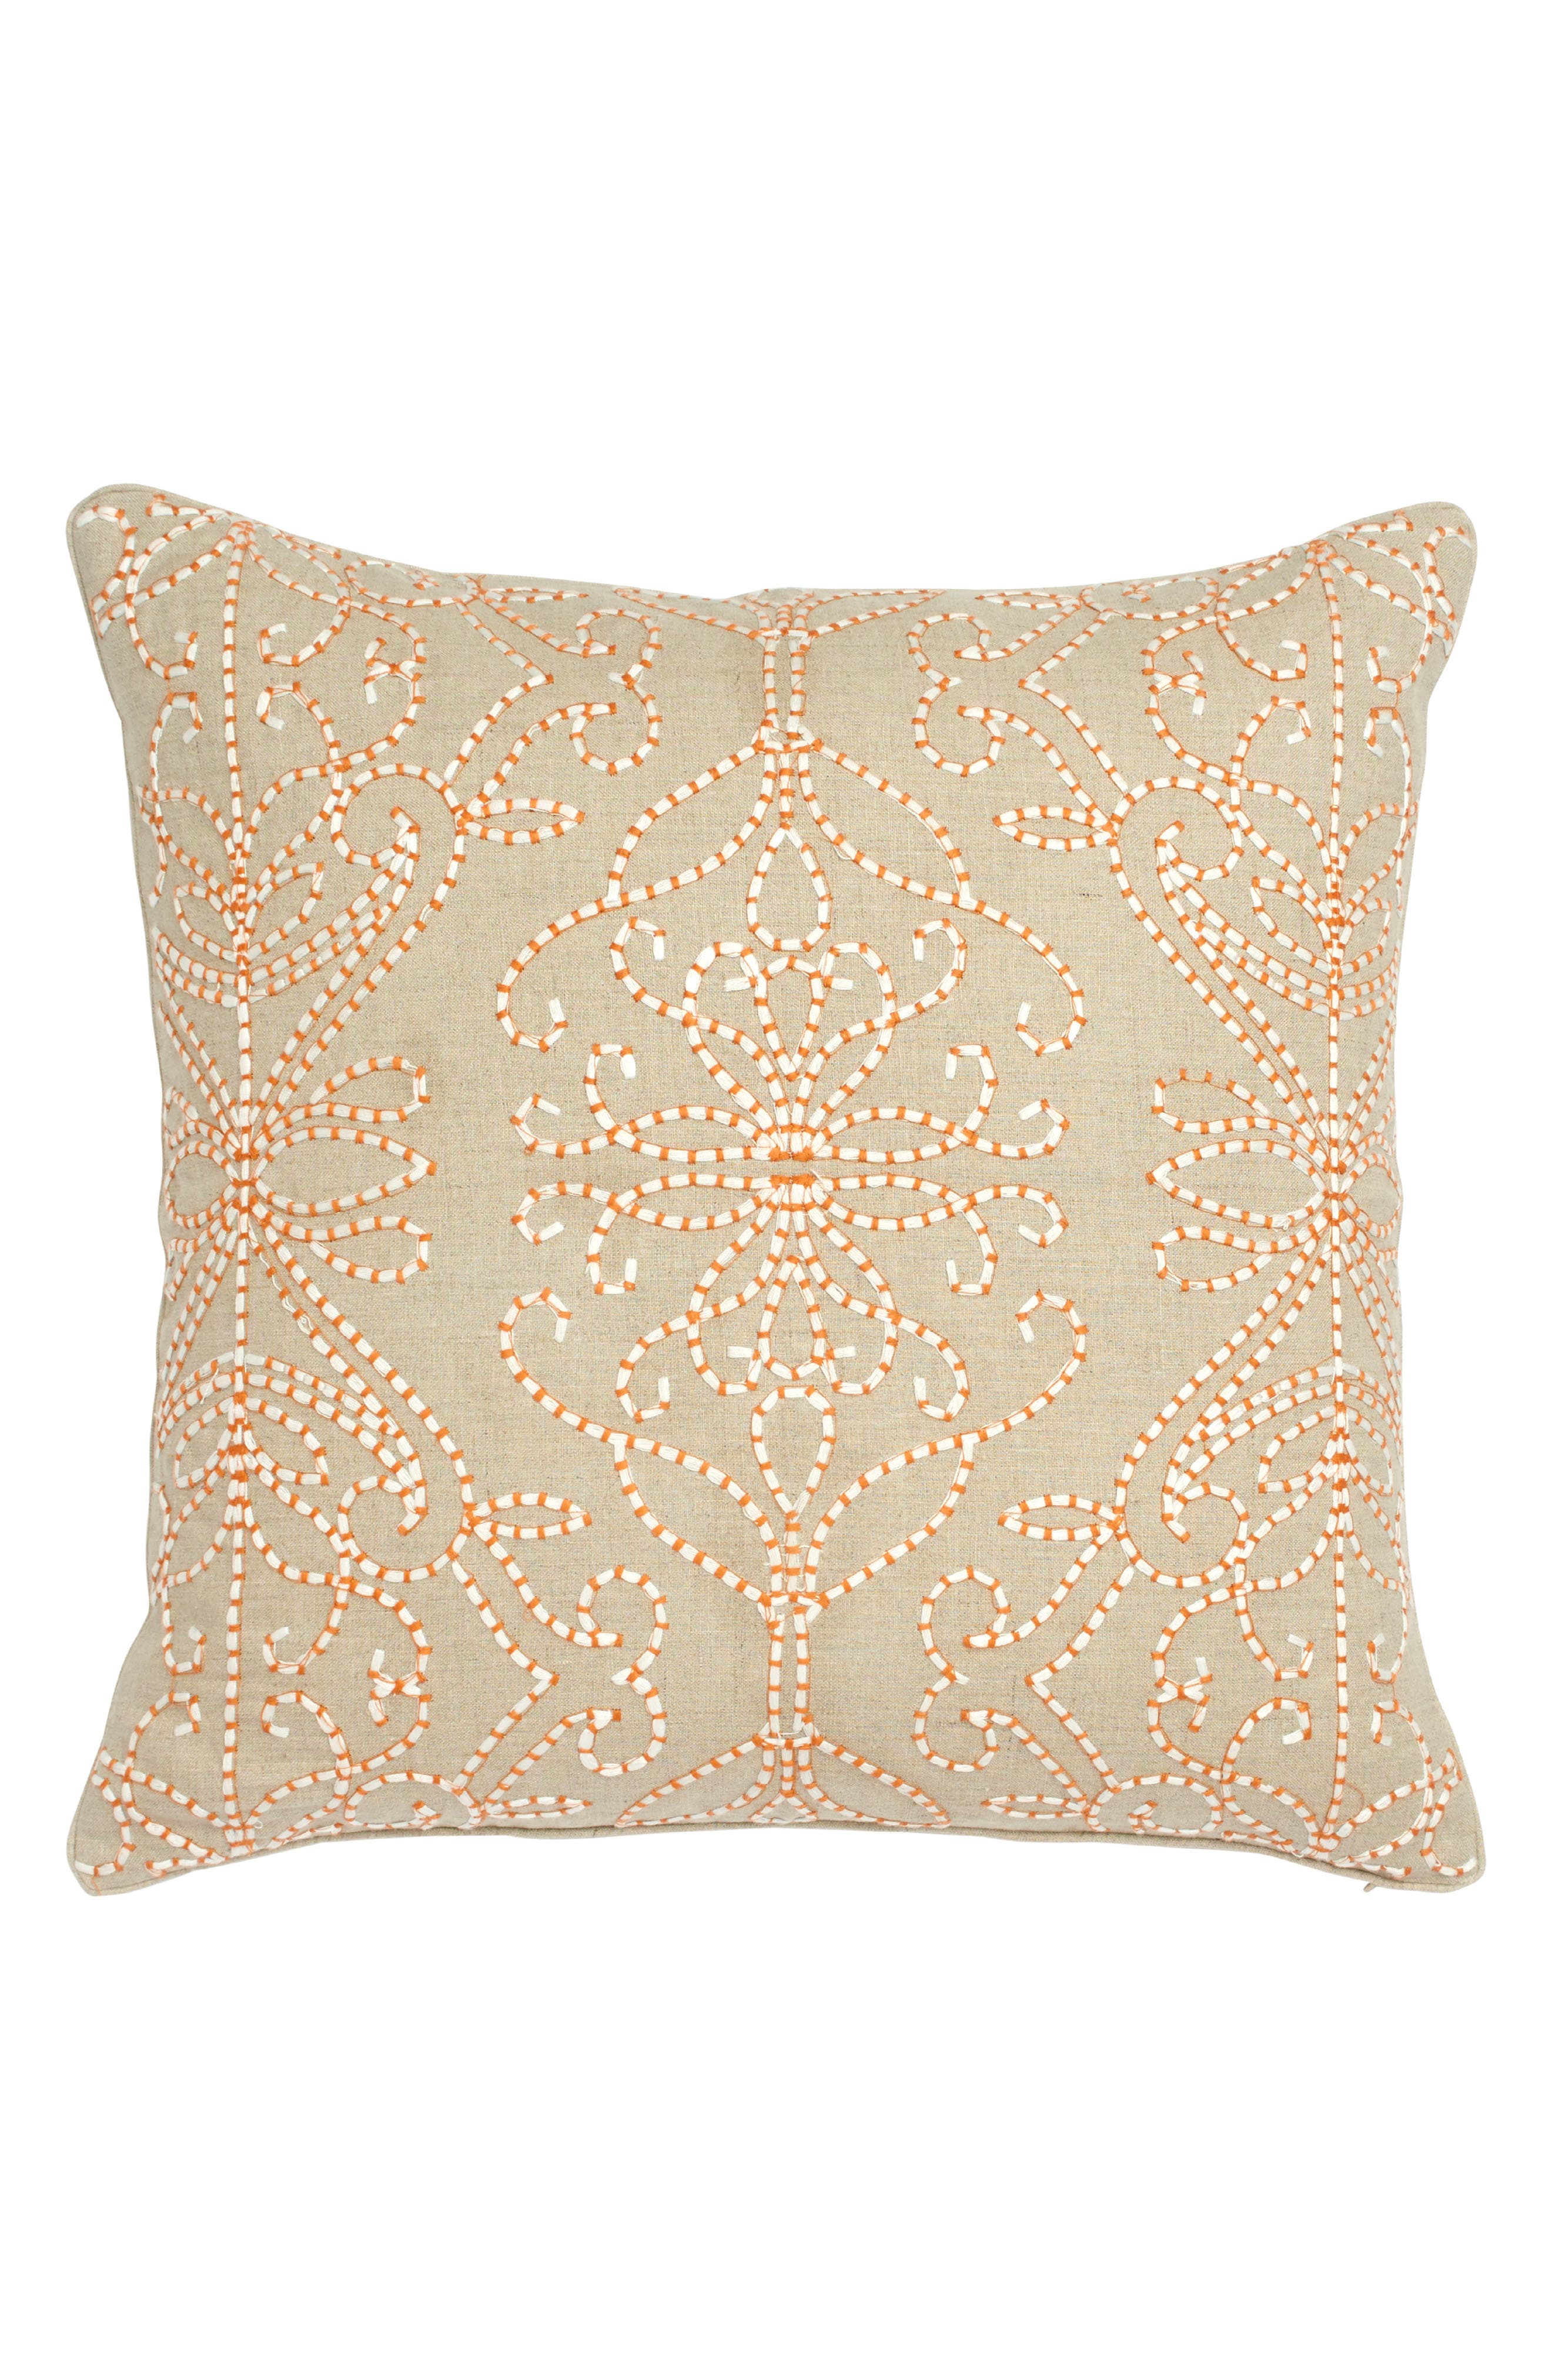 Amazilia Embroidered Accent Pillow,                             Main thumbnail 1, color,                             Taupe